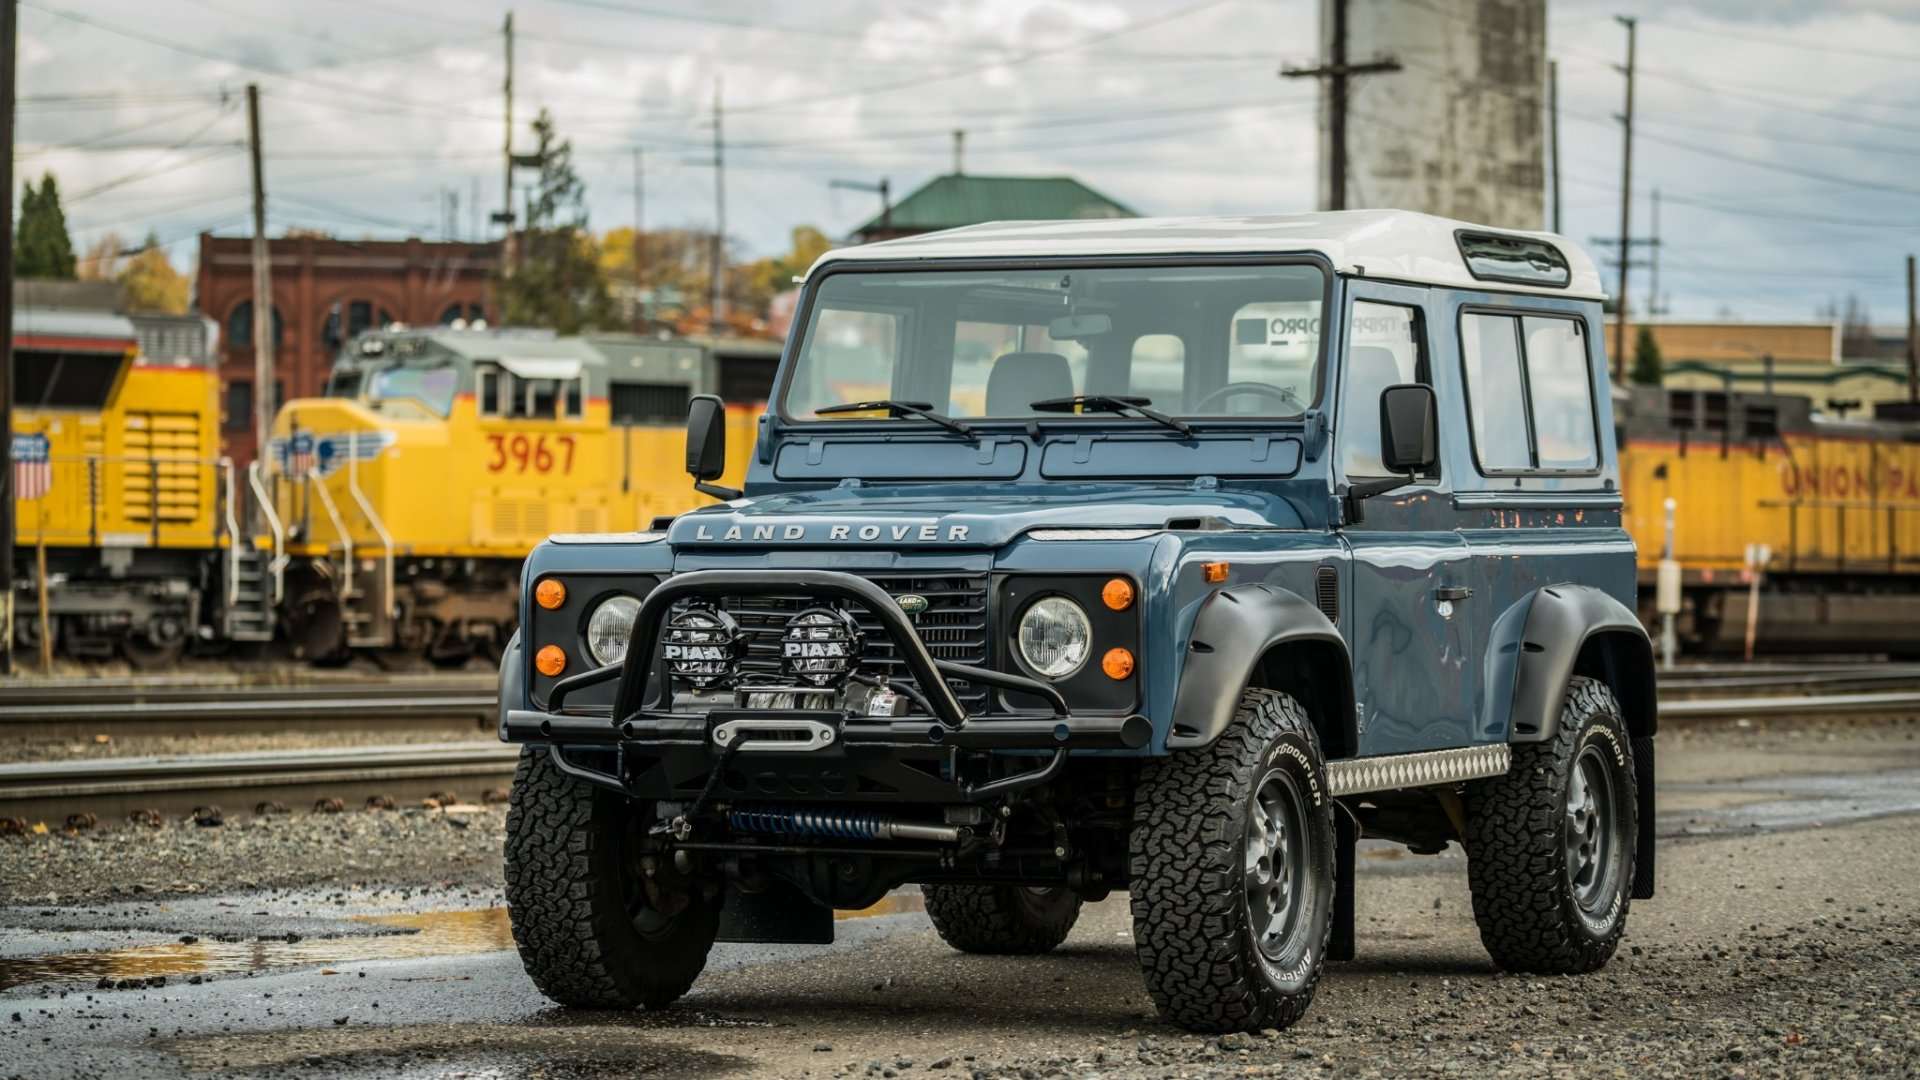 Voertuigen - Land Rover Defender  Land Rover Defender 90 Off-Road Blue Car Old Car Auto Wallpaper